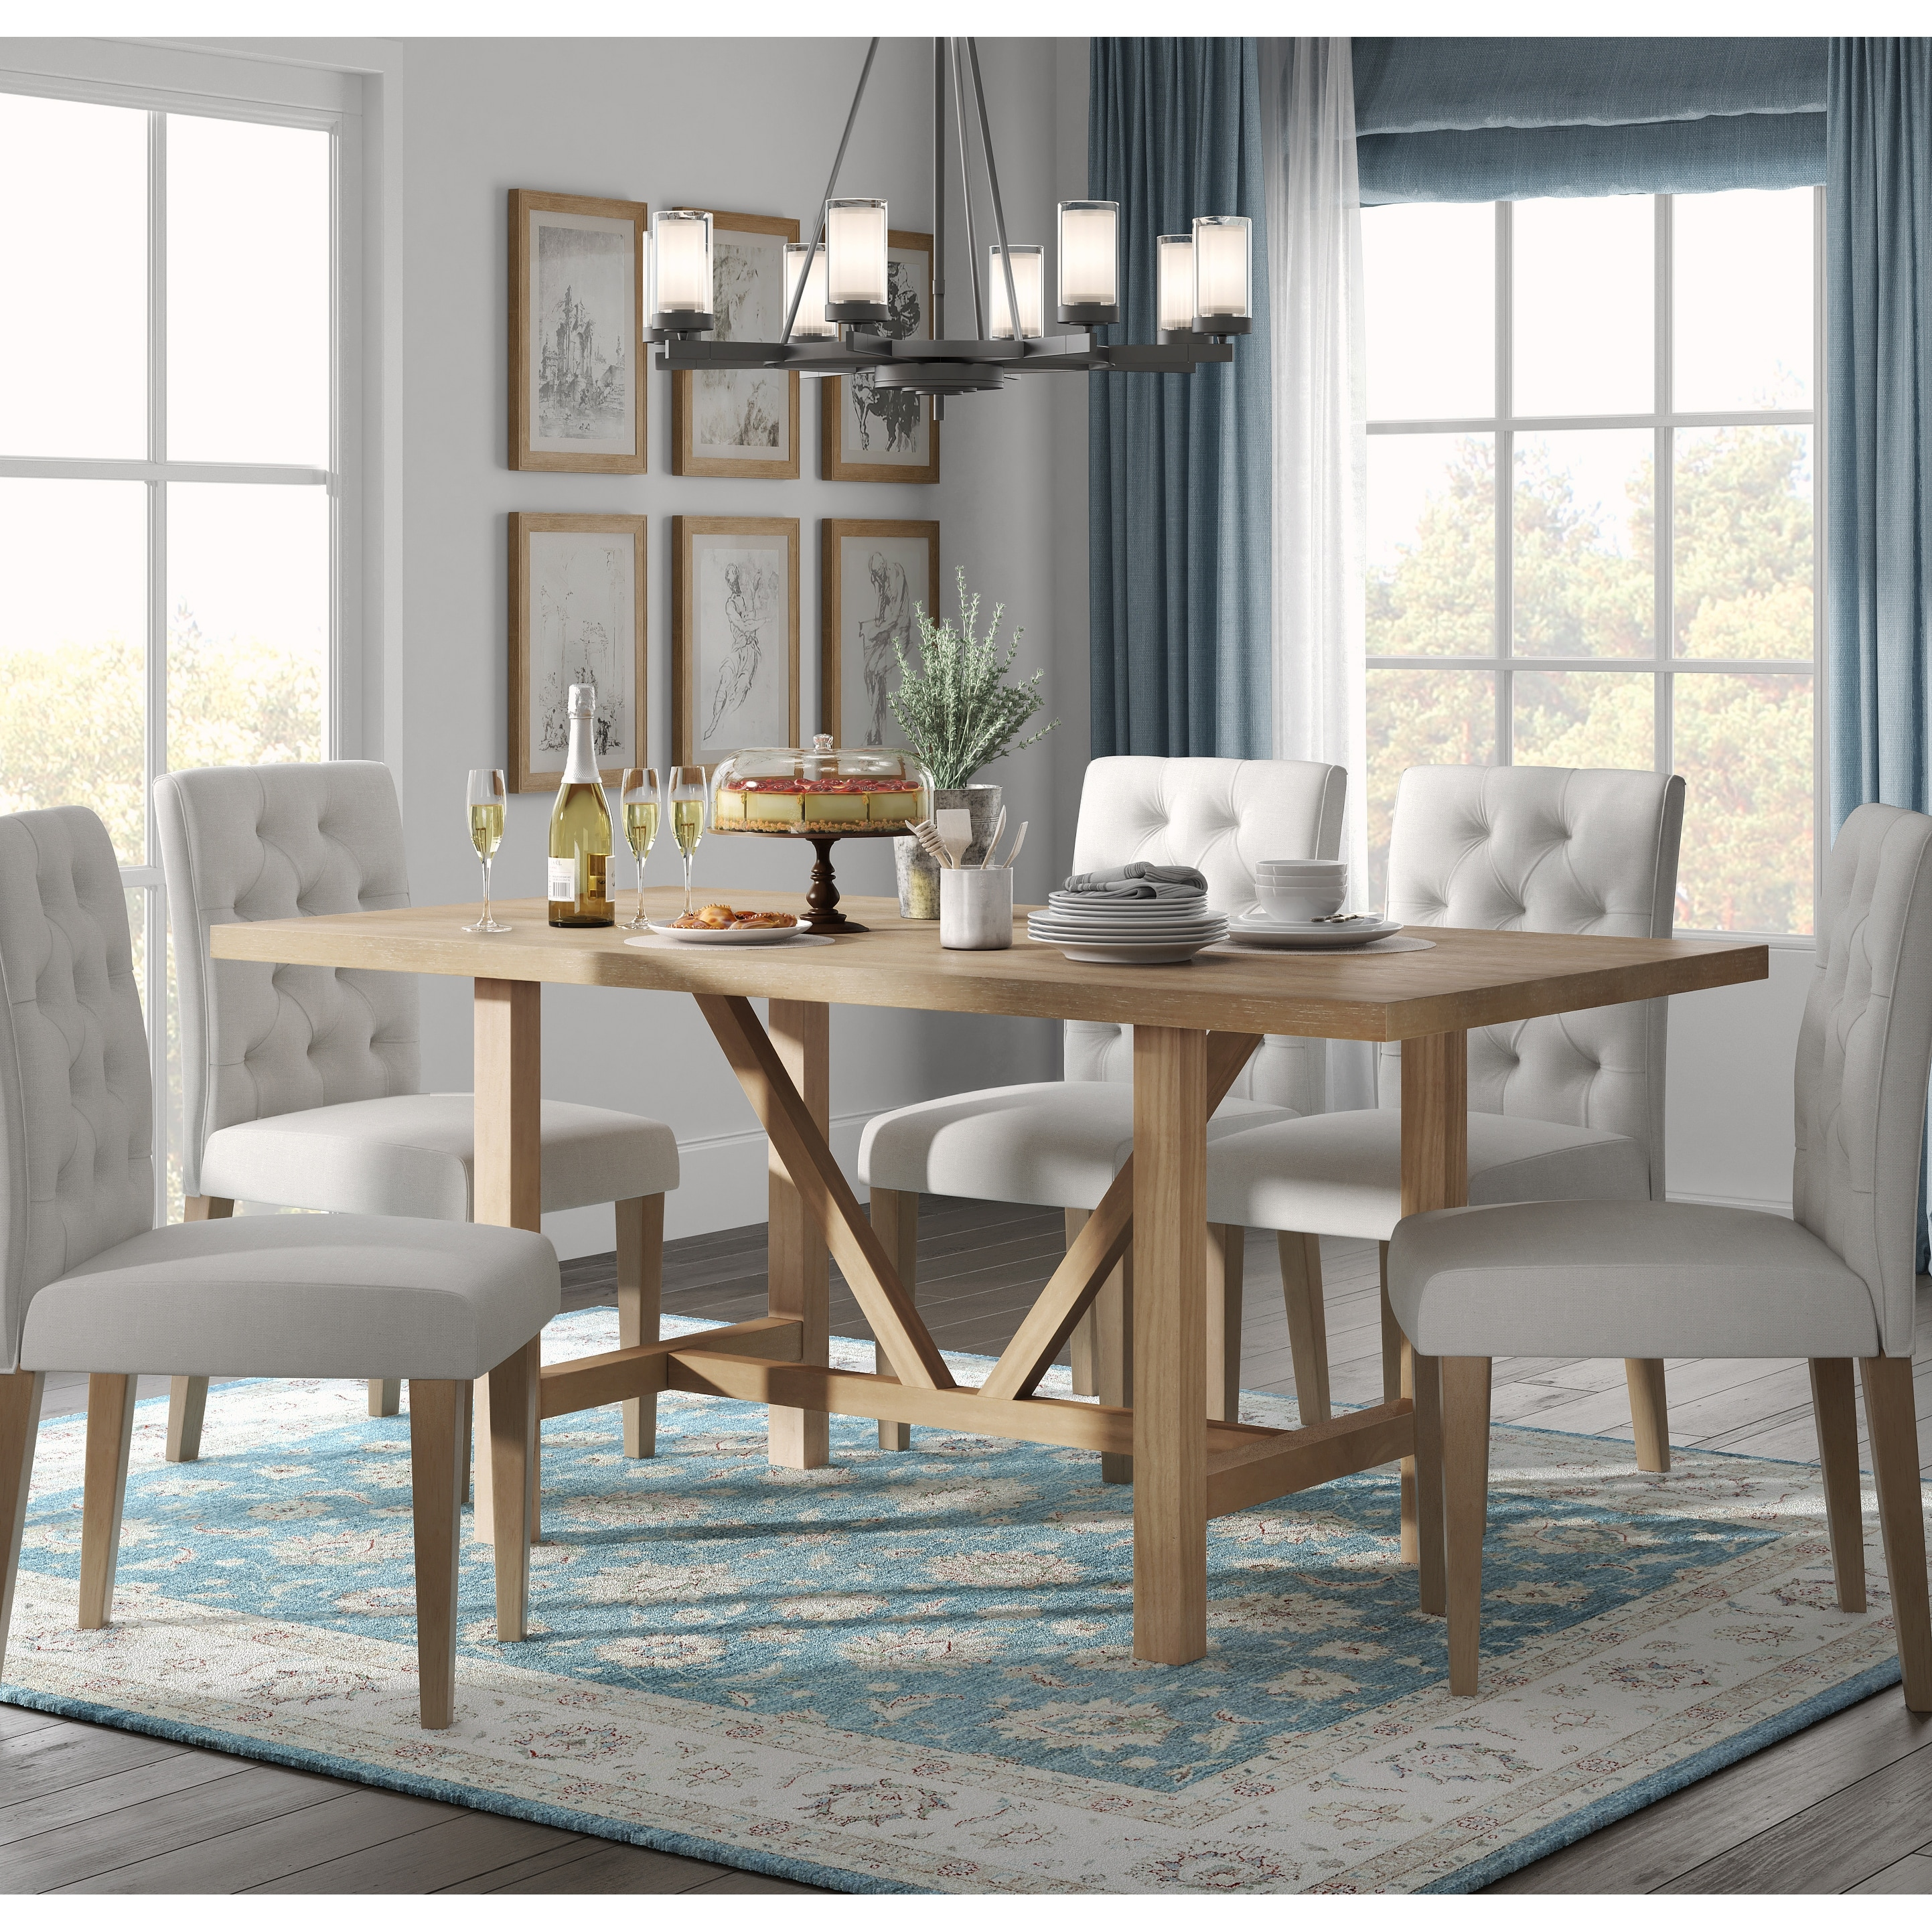 Finch Grant Dining Table beige